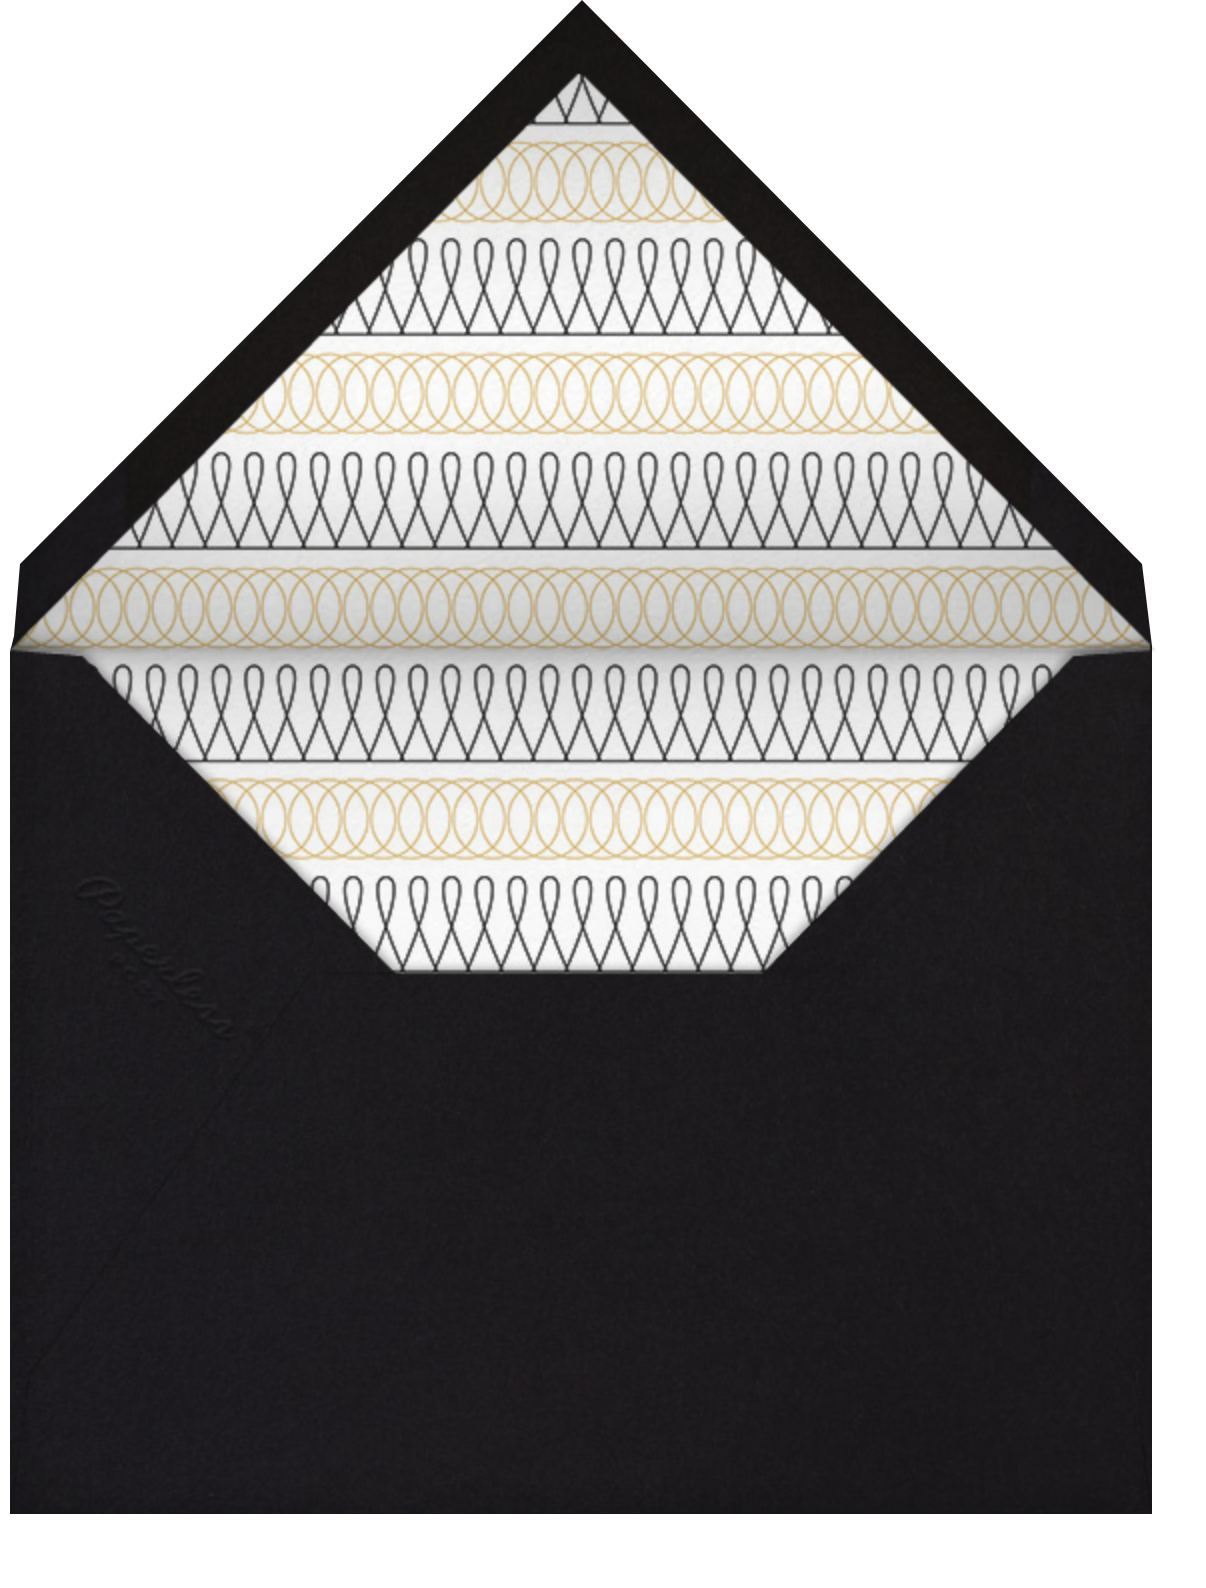 Spirals (Square) - Gold - Paperless Post - Graduation - envelope back